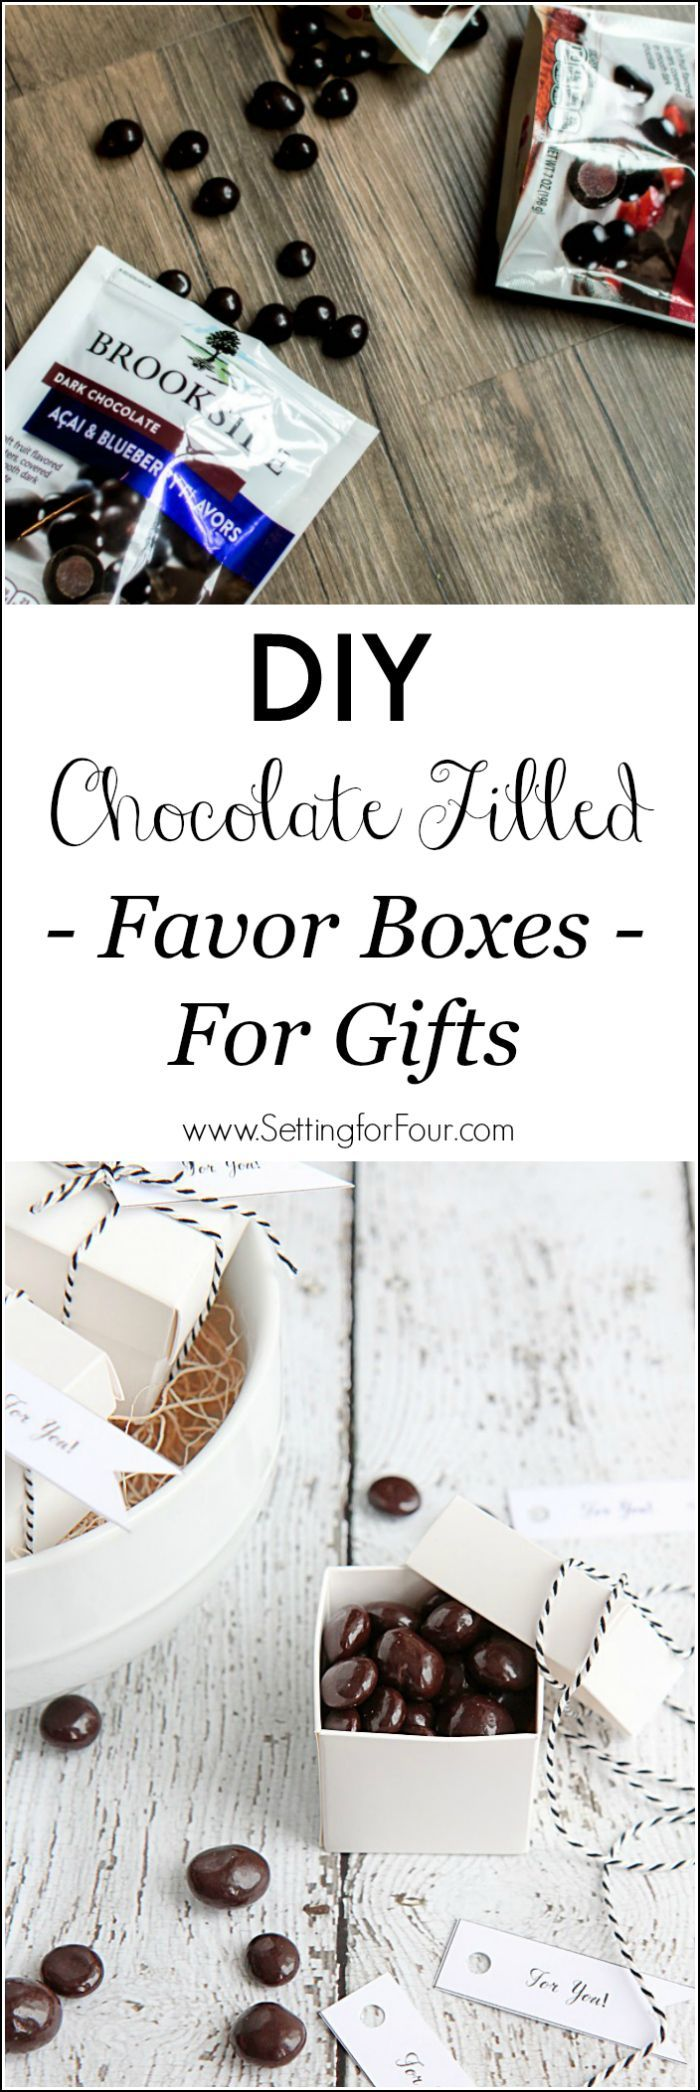 Learn how to make these adorable DIY Chocolate Filled Favor Boxes for Gifts! See the quick and easy tutorial! These chocolatey mini favor boxes make perfect, yummy gift idea for the holidays, teacher gifts, thank you gifts as well as wedding and party favors. #ad